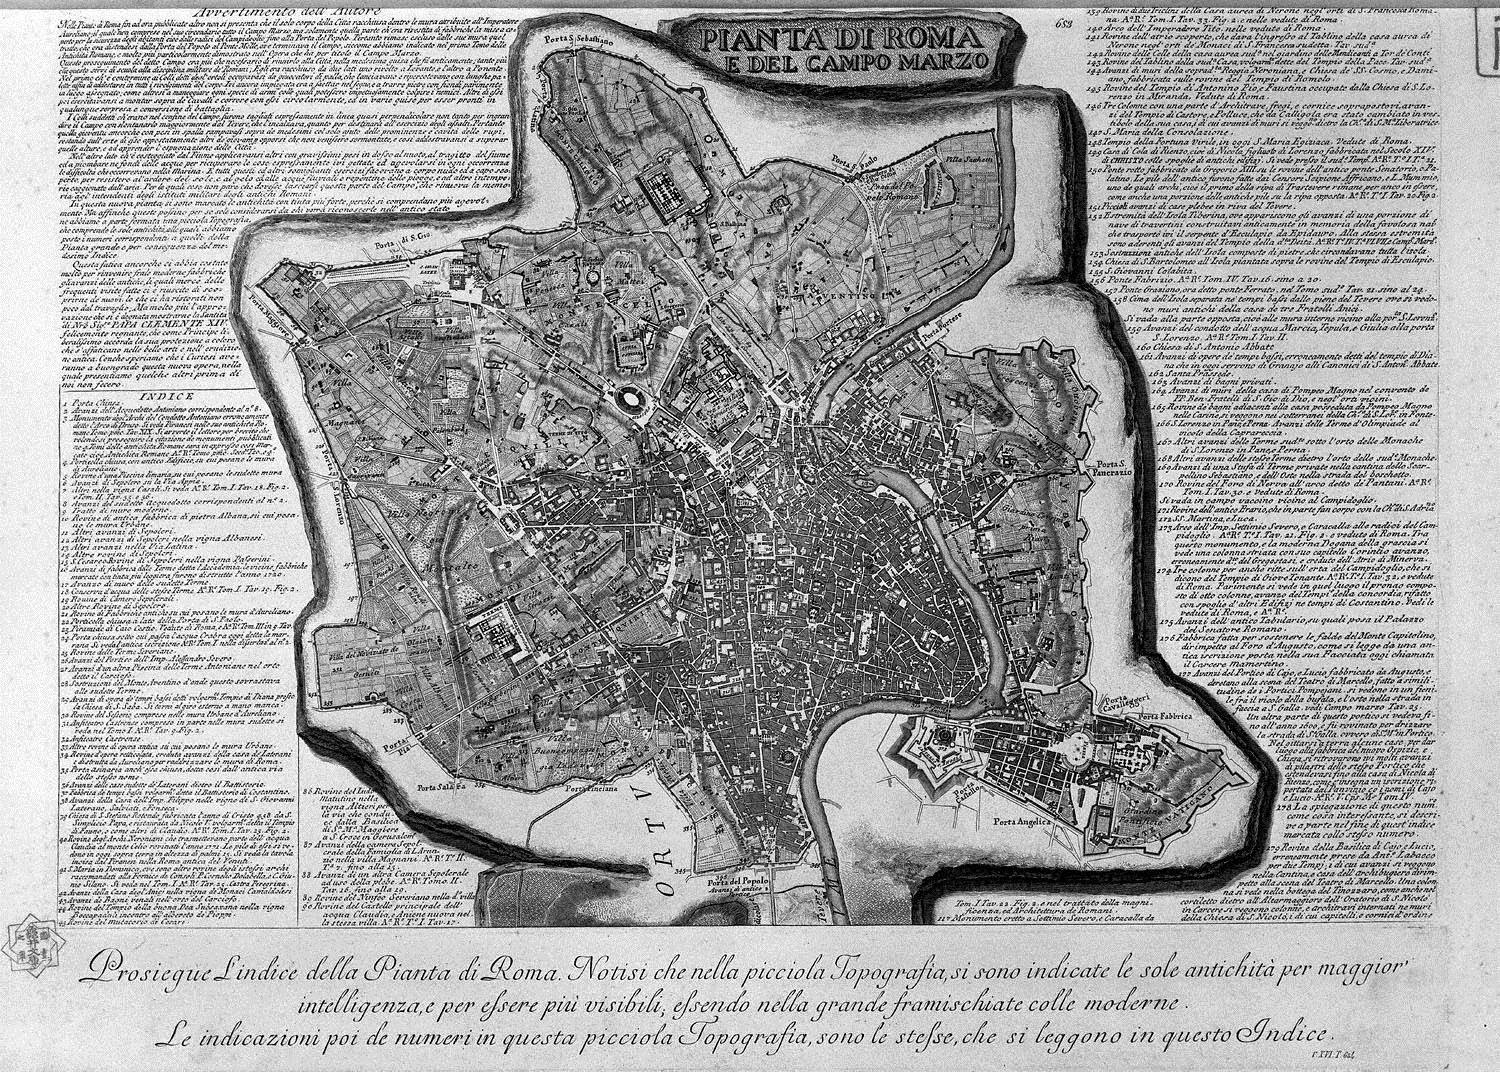 map-of-rome-and-the-campus-martius-with-the-relevant-index-and-dedication-to-clement-xiii-in.jpg